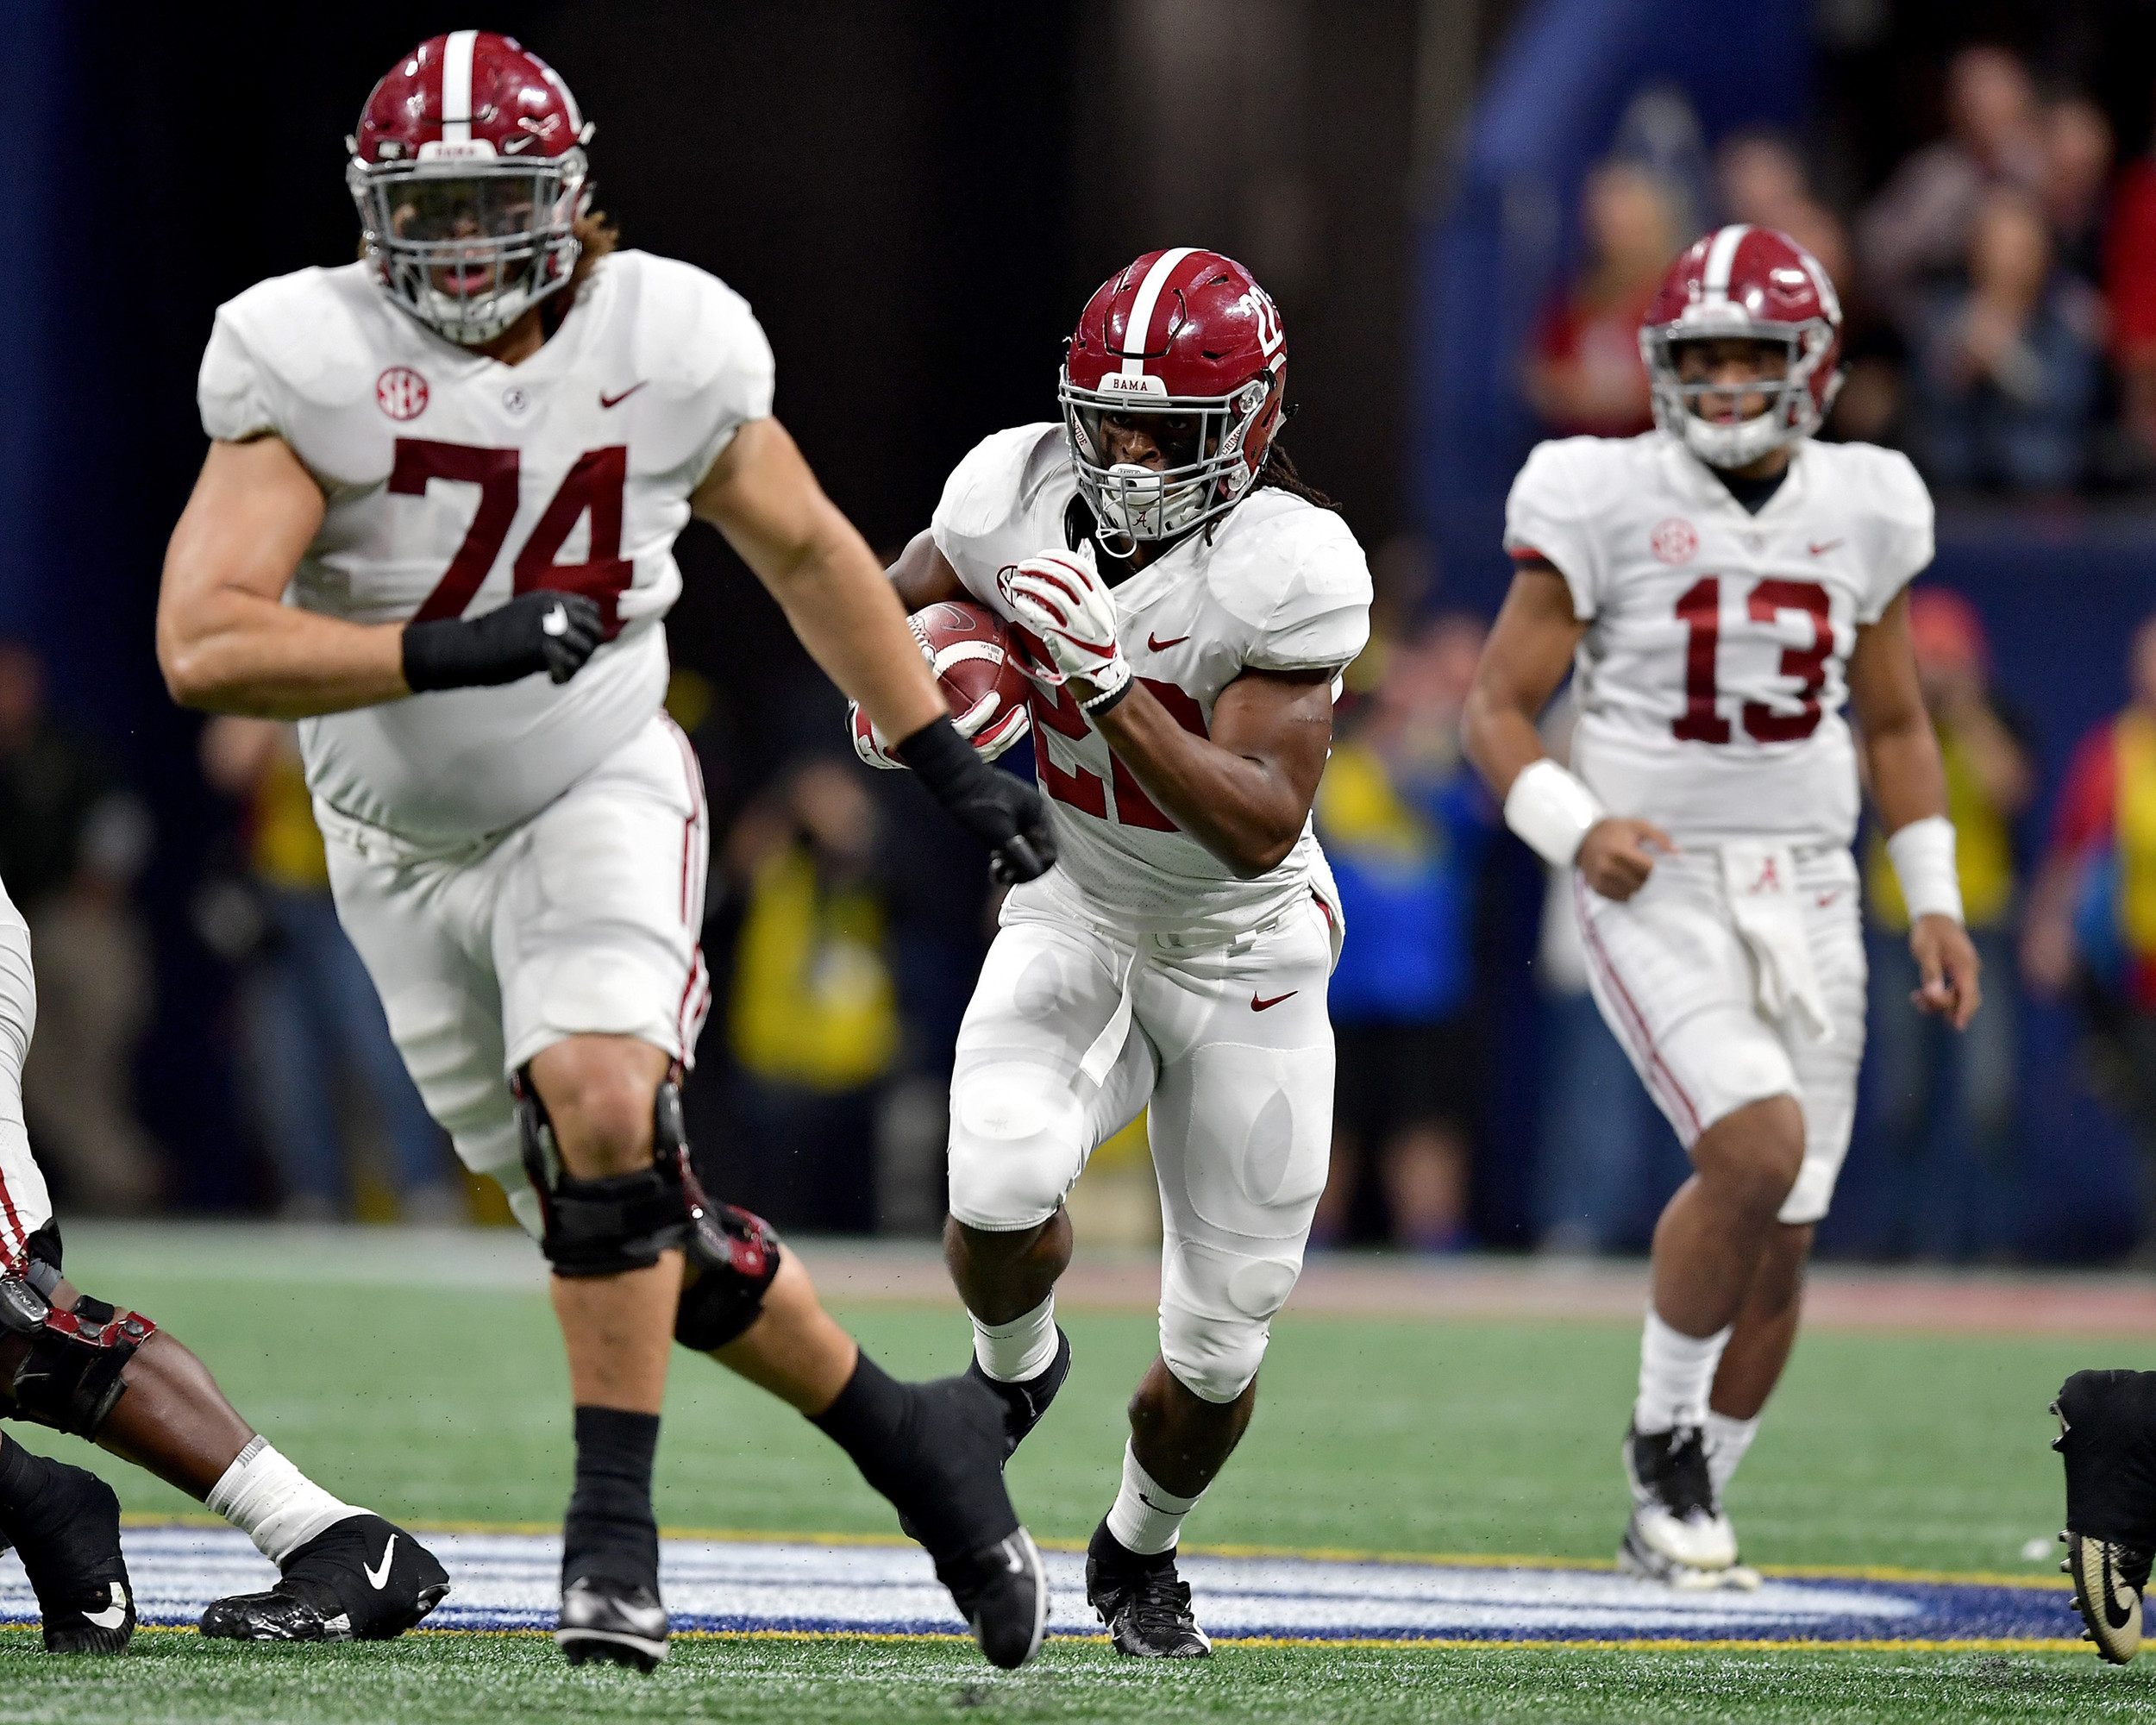 Alabama Crimson Tide running back Najee Harris (22) with a carry during the first half of the 2018 SEC Championship football game against the Georgia Bulldogs at Mercedes-Benz Stadium in Atlanta, Ga., on Dec. 1, 2018. Alabama wins 35-28. (Photo by Lee Walls)